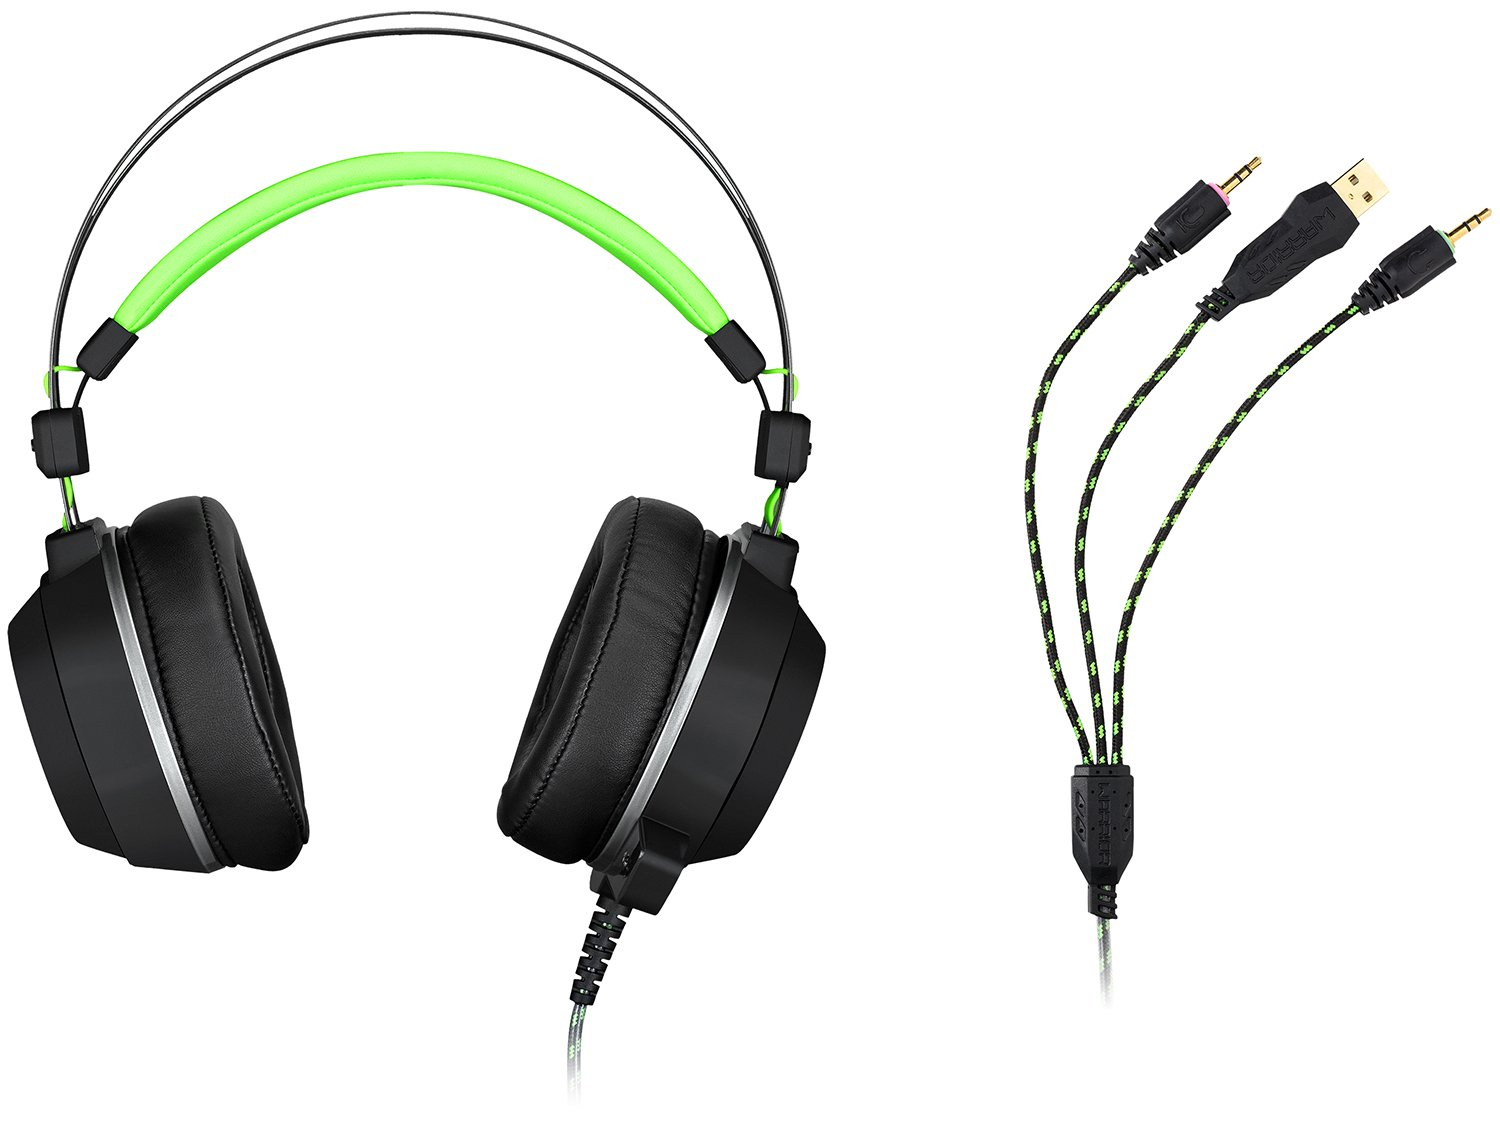 Foto 3 - Headset Gamer para PC Warrior - PH225 Iluminado com LED